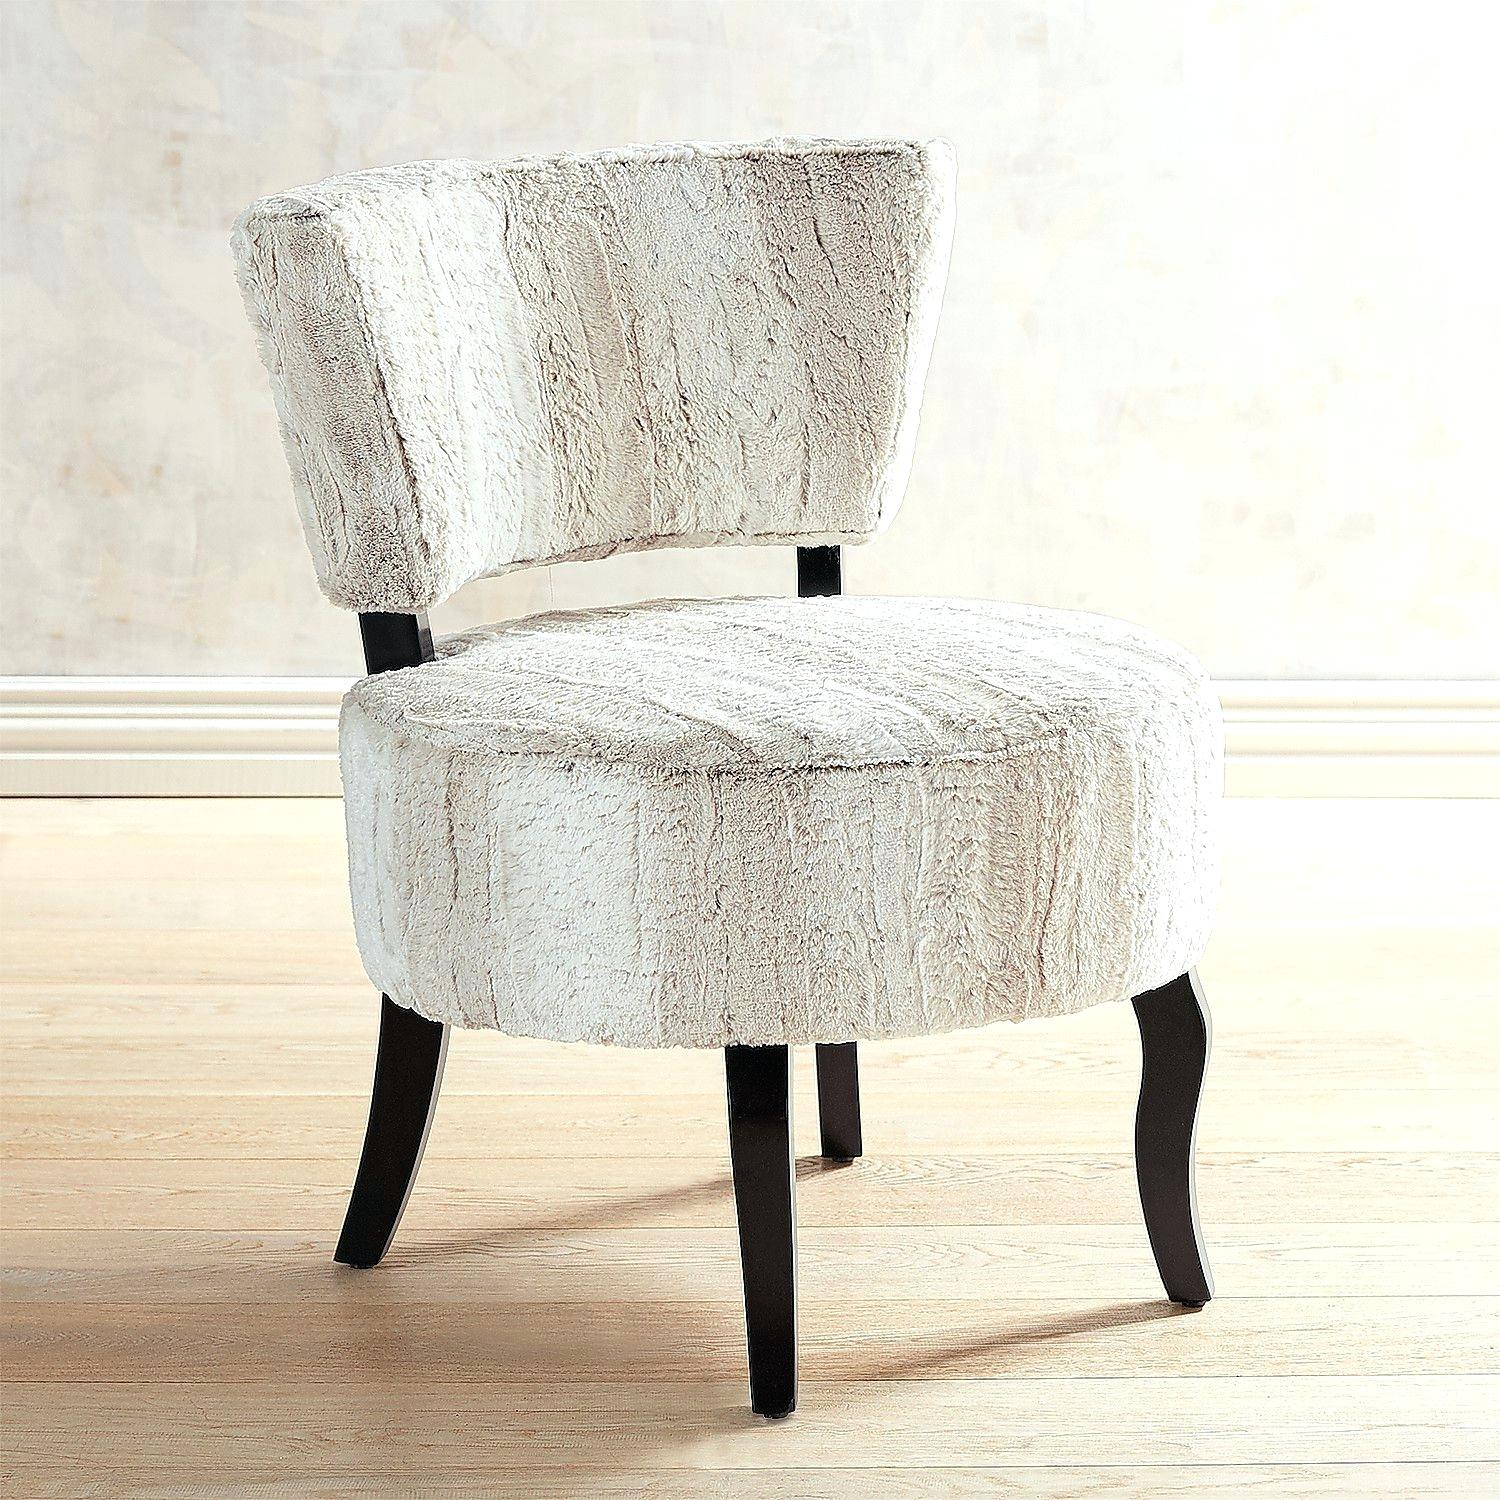 amazing pier one accent chair with imports table lamps its all chairs wicker cushions gravity wins sisal runner that use batteries marble pedestal coffee solid wood and end tables